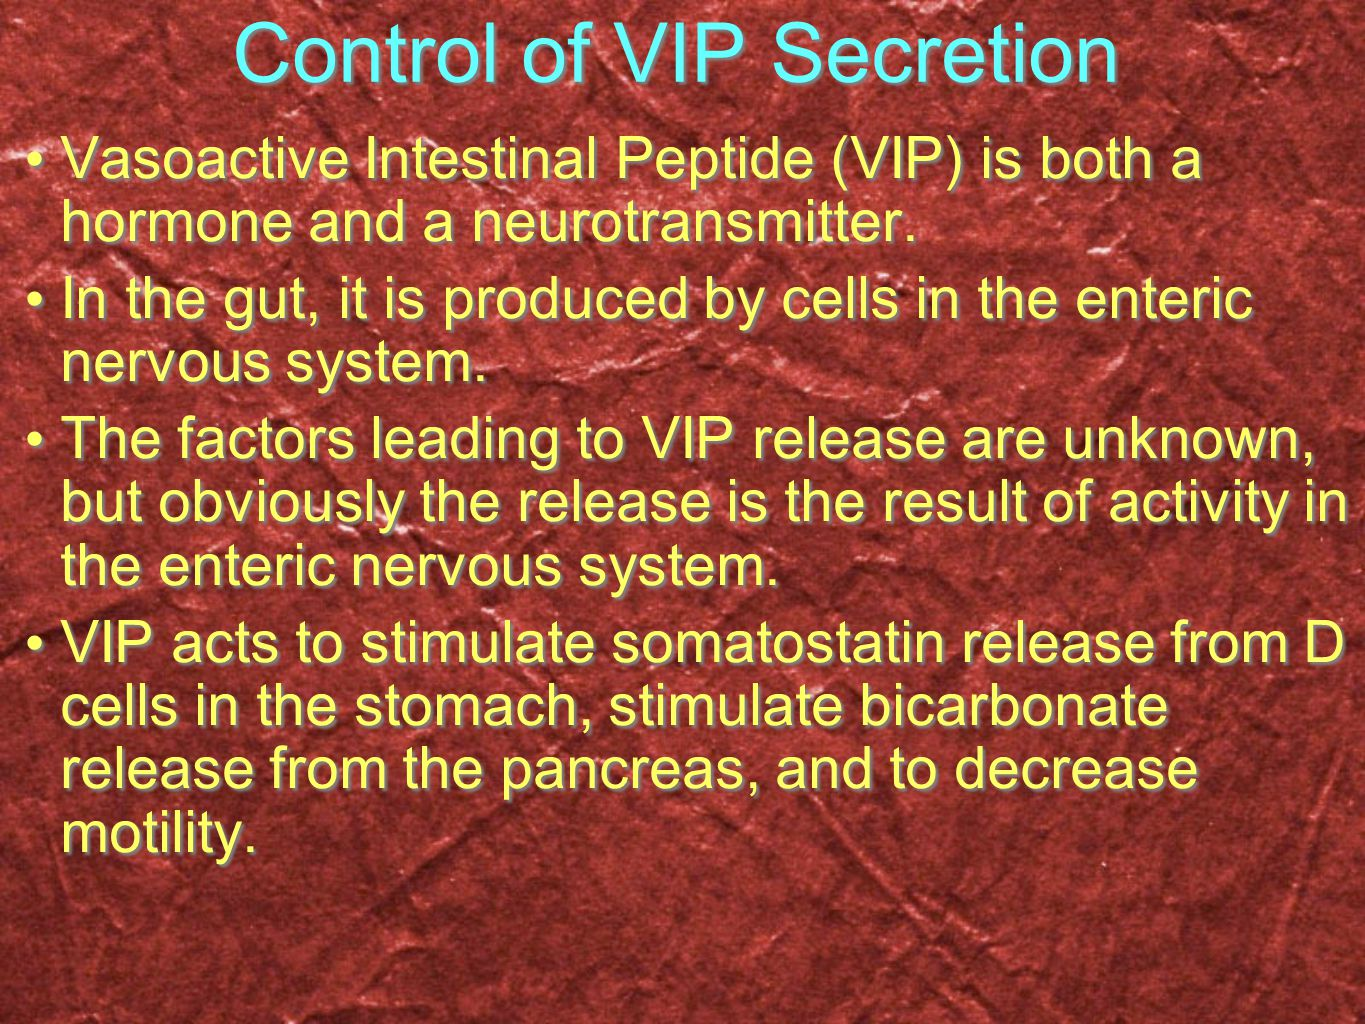 Control of VIP Secretion Vasoactive Intestinal Peptide (VIP) is both a hormone and a neurotransmitter.